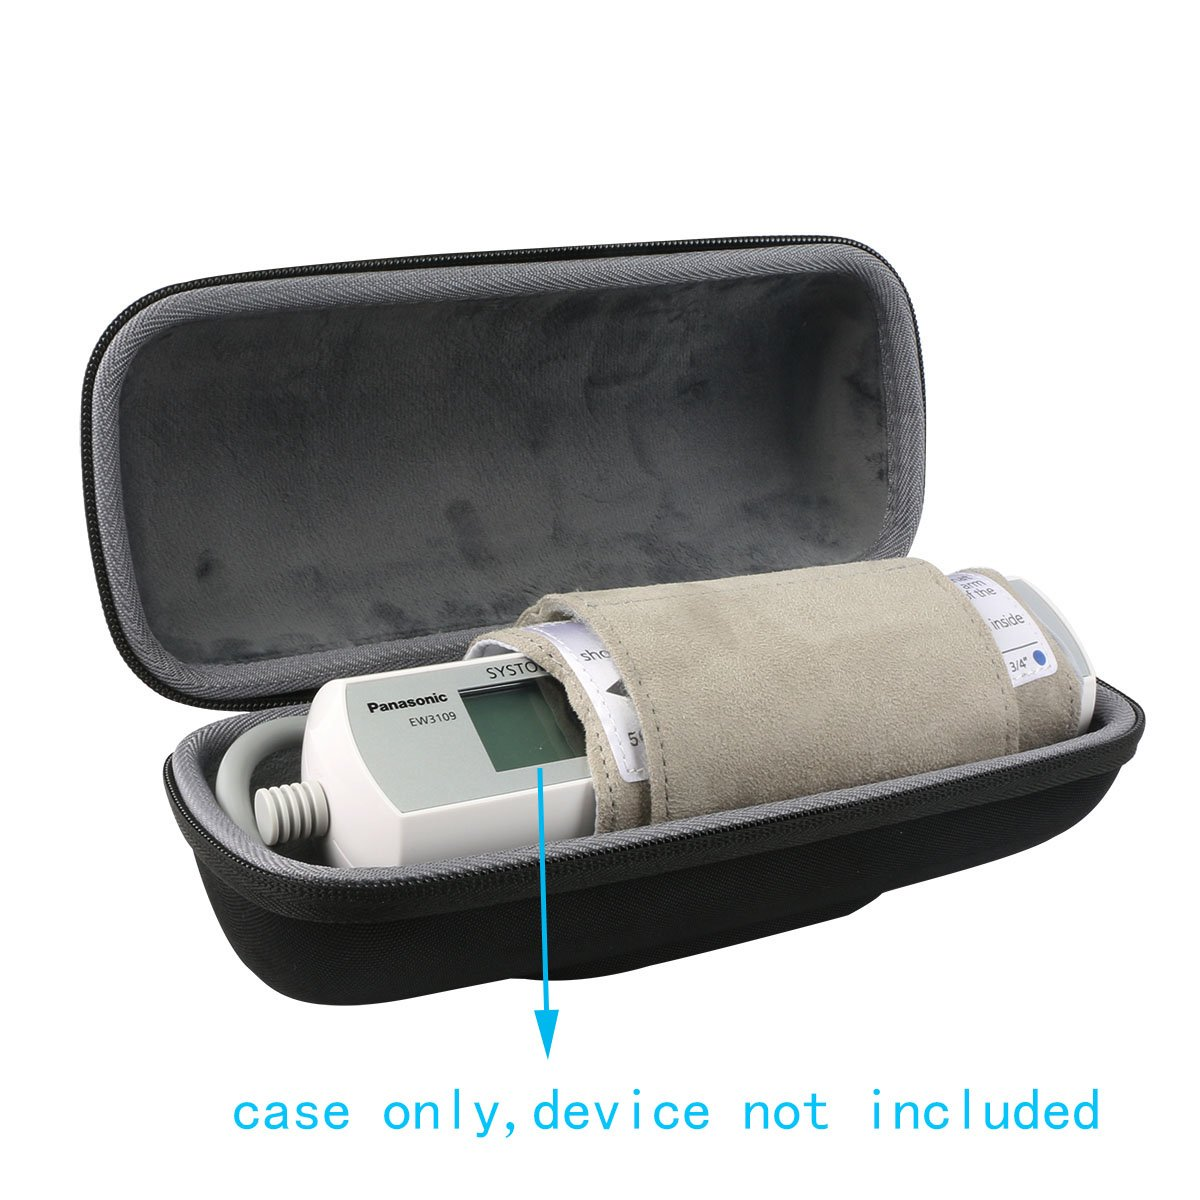 for Panasonic Portable Upper Arm Blood Pressure Monitor Hard Case fits EW3109W by co2CREA